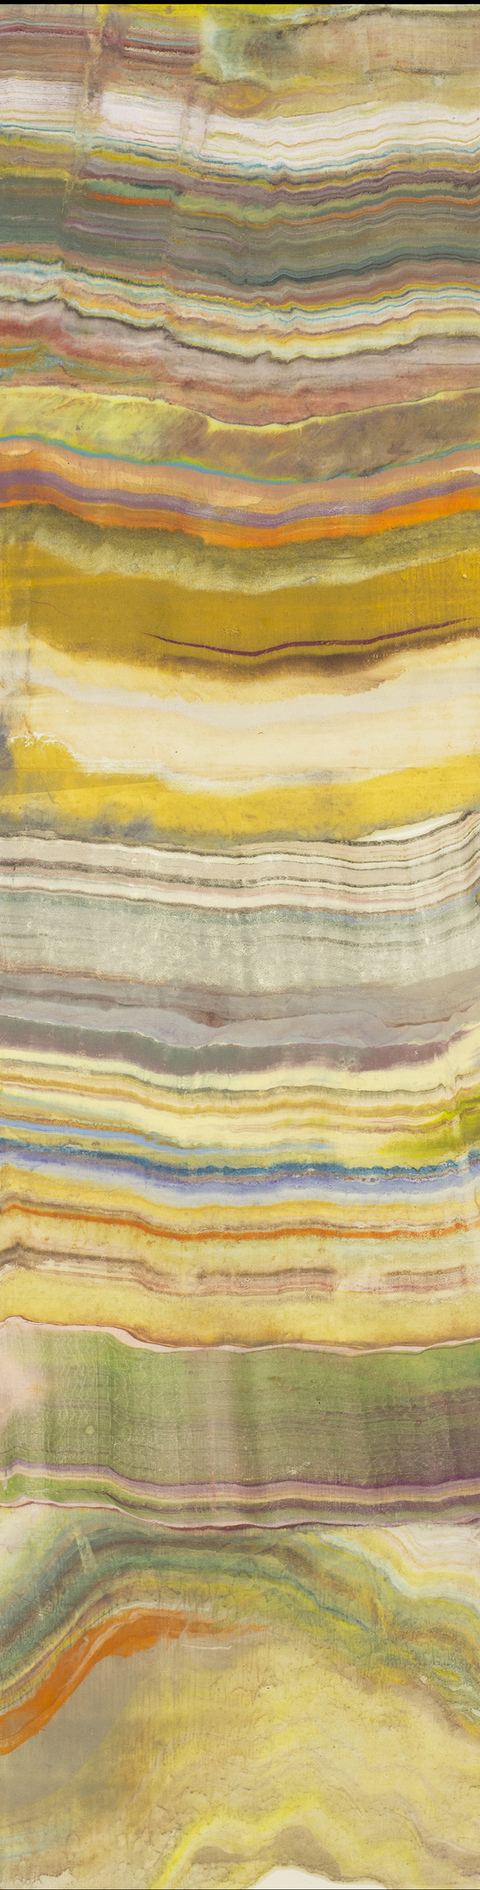 Laura Moriarty On Paper Encaustic on sumi scroll